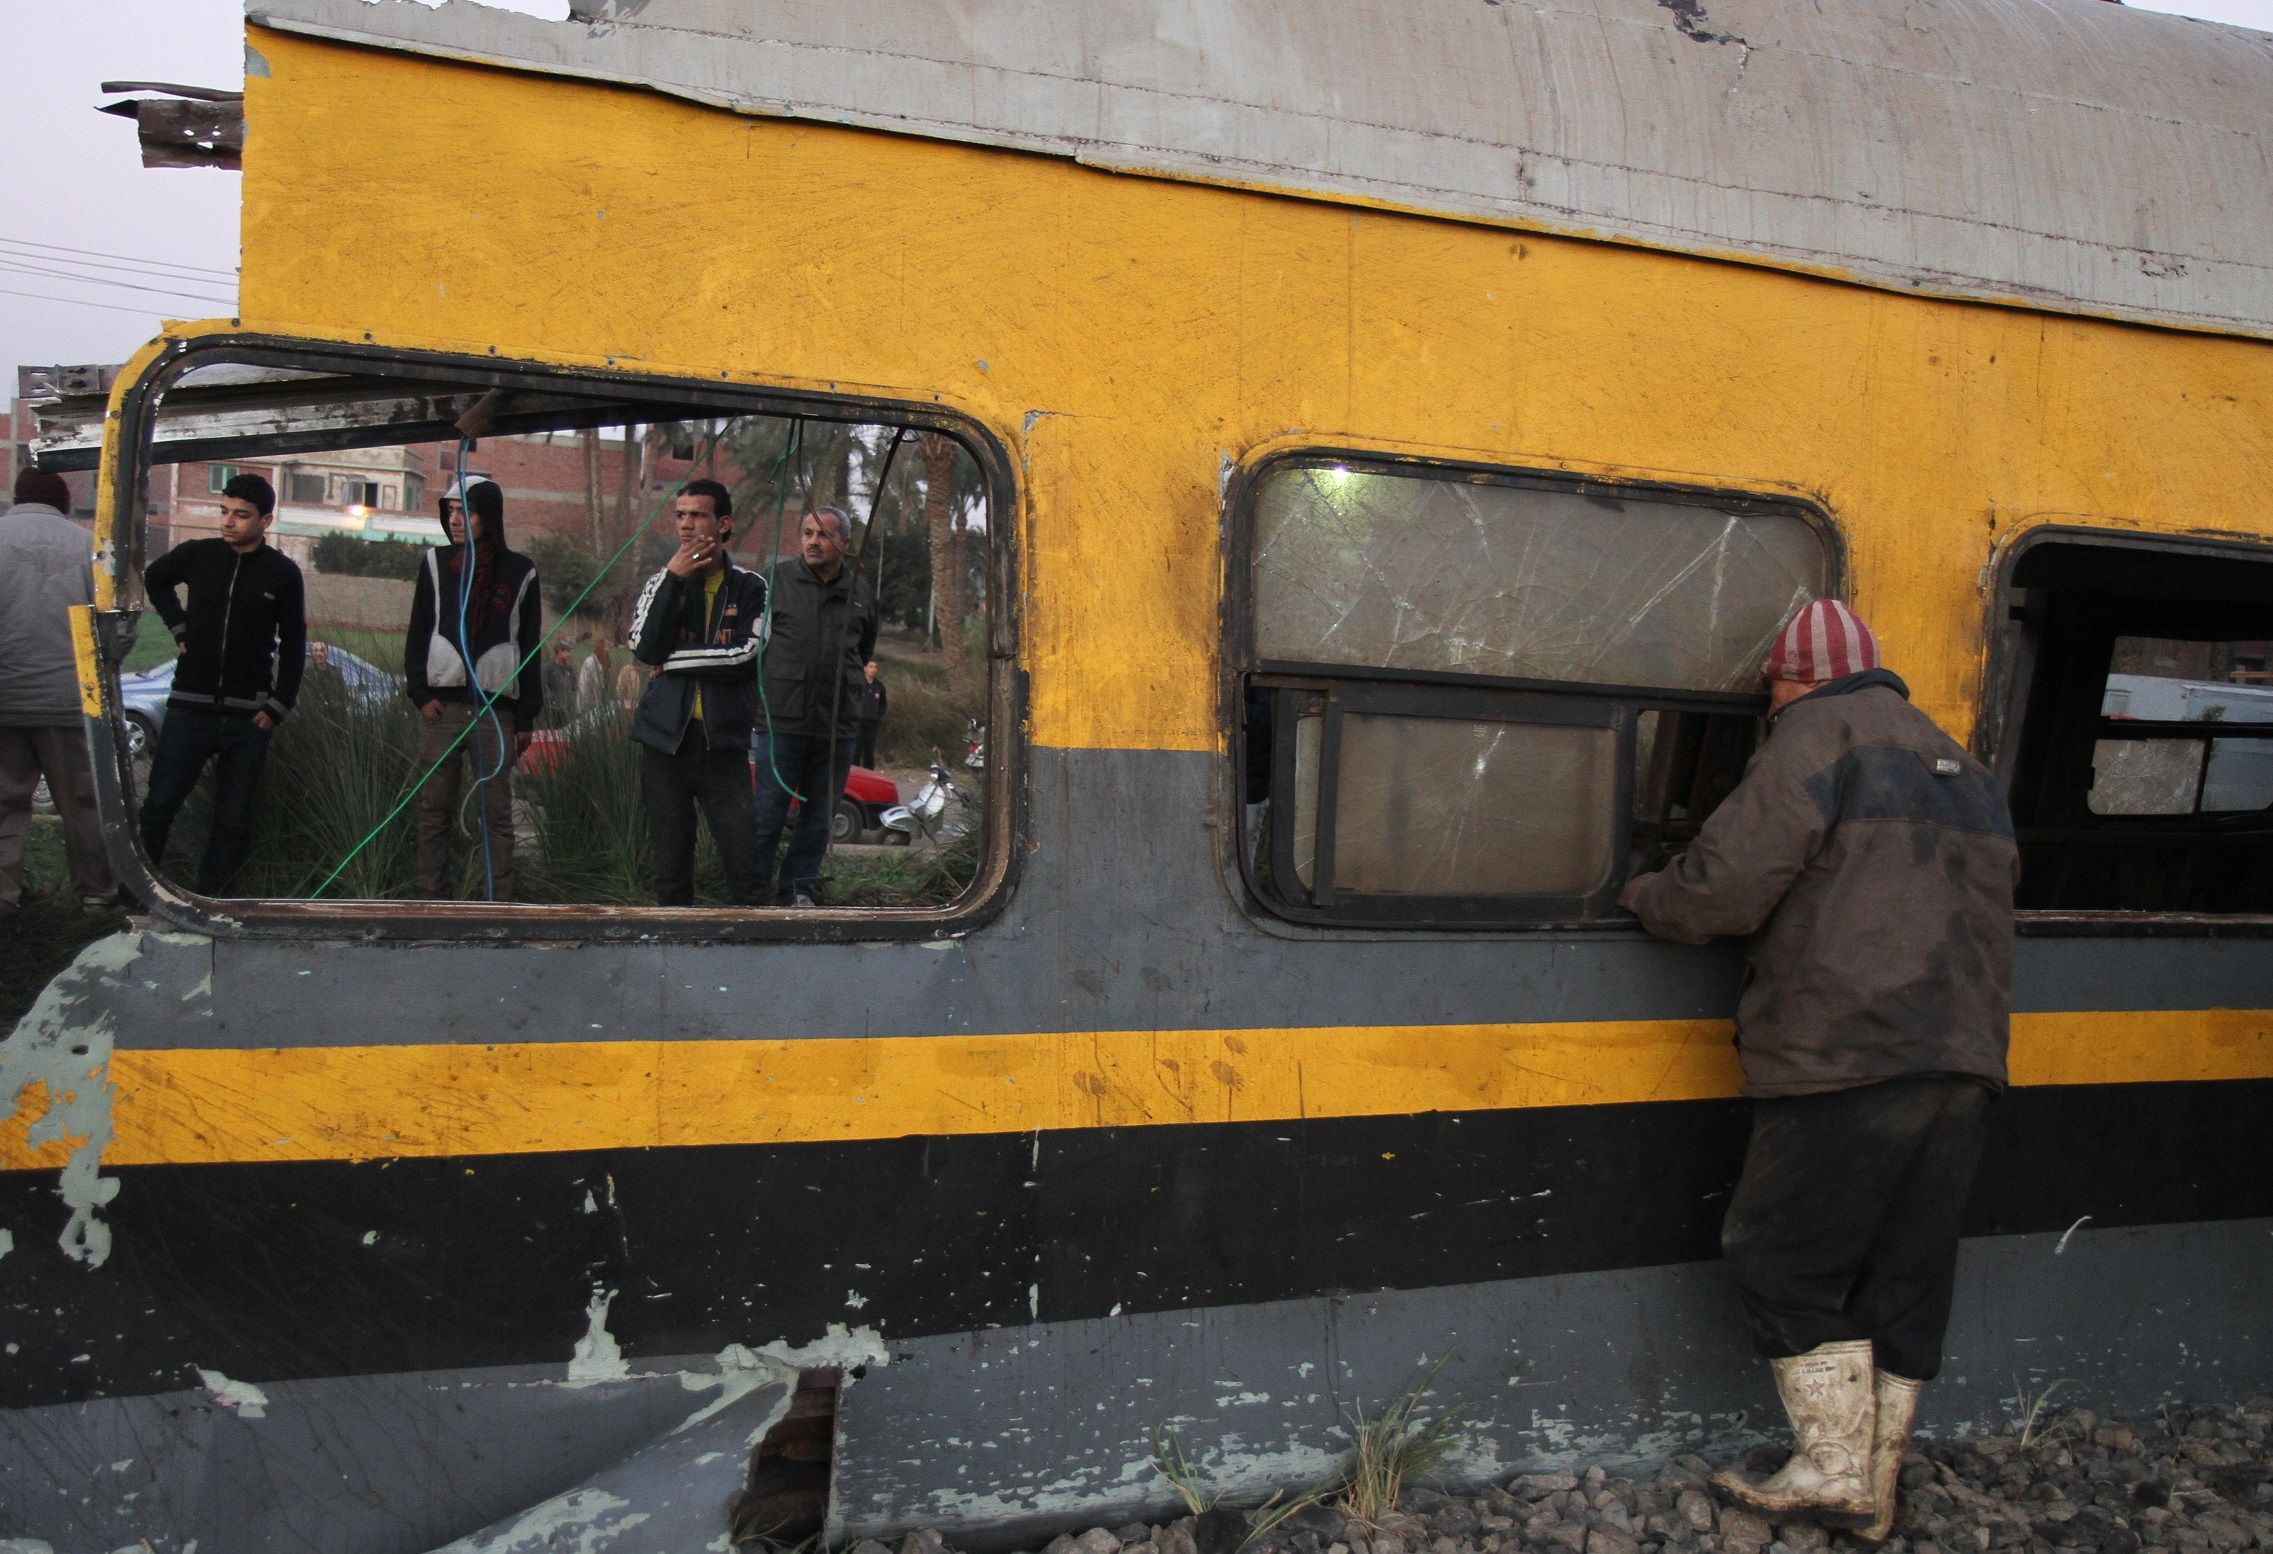 36 die as trains collide in Egypt